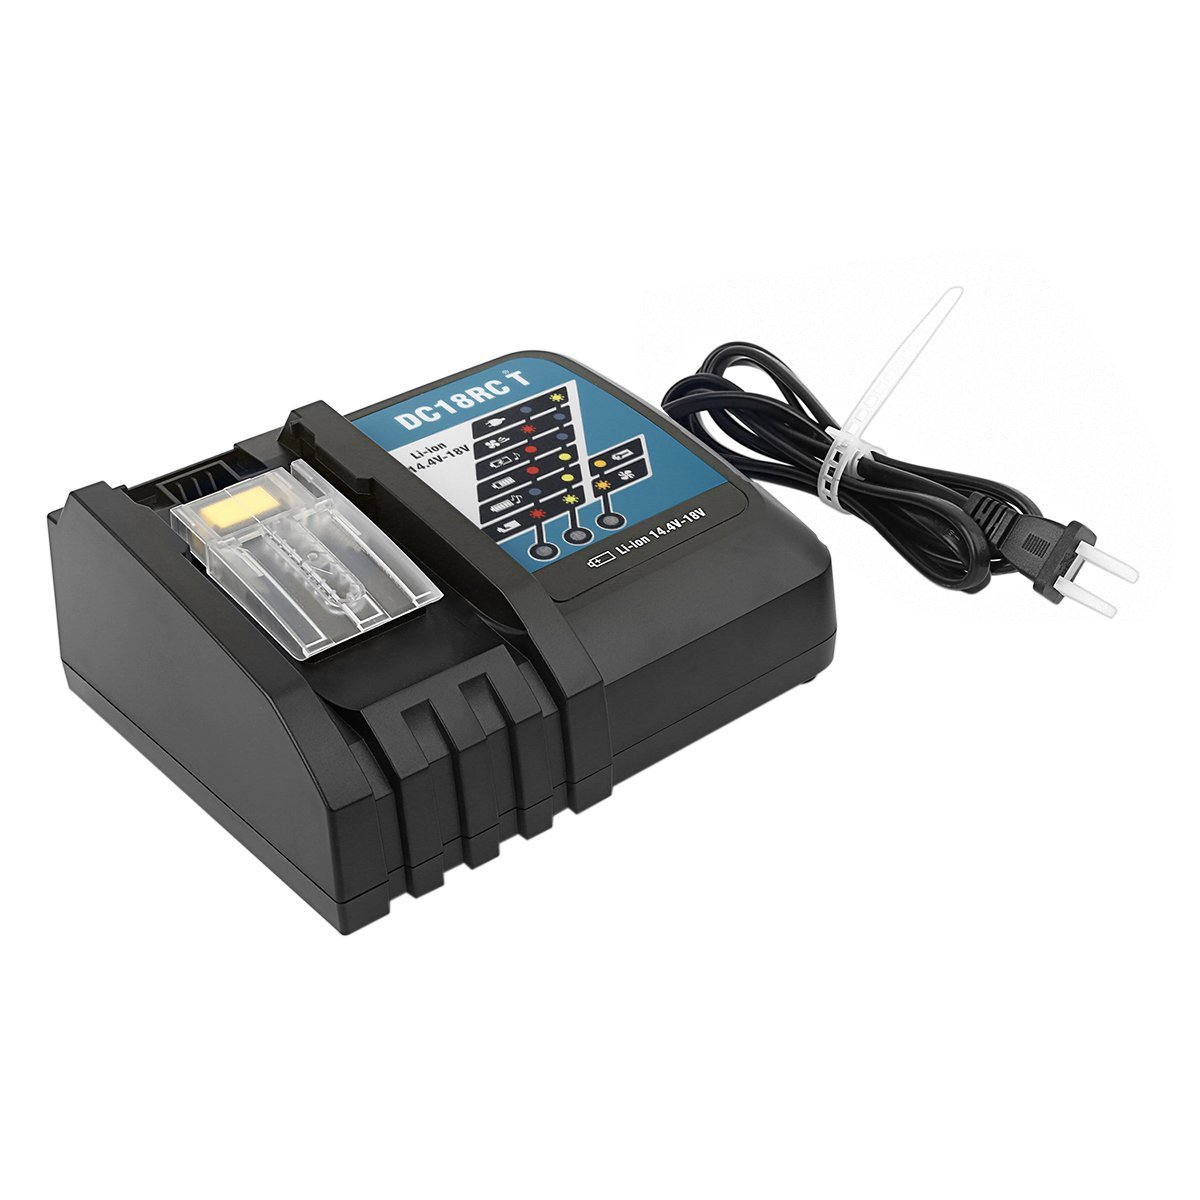 Cheap Makita Drill Charger, find Makita Drill Charger deals